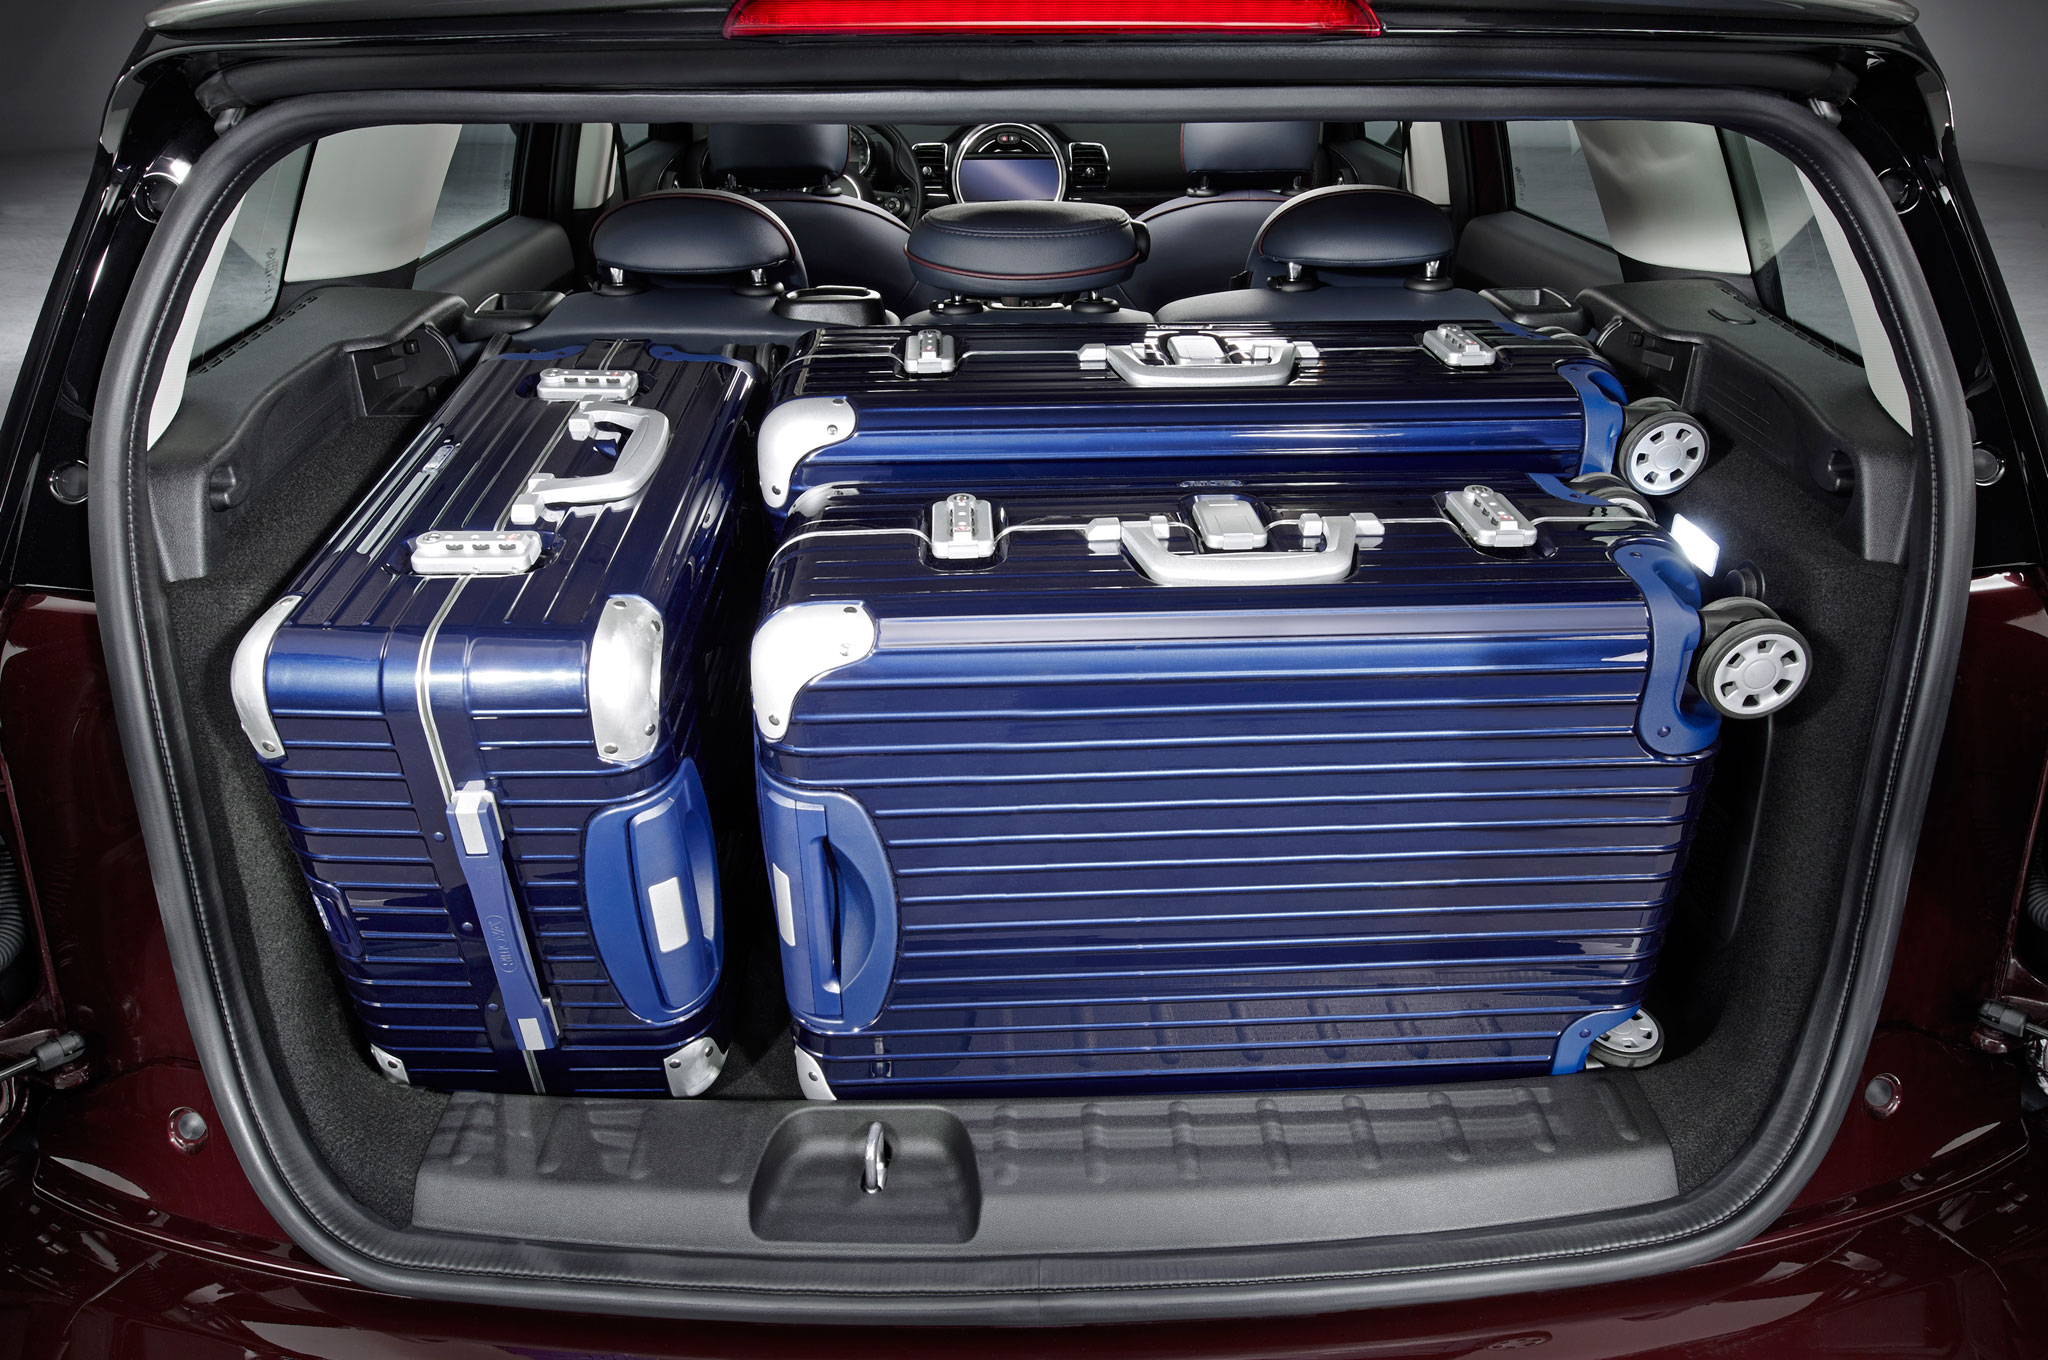 2016 Mini Clubman Interior Cargo Area With Luggage Motor Trend En